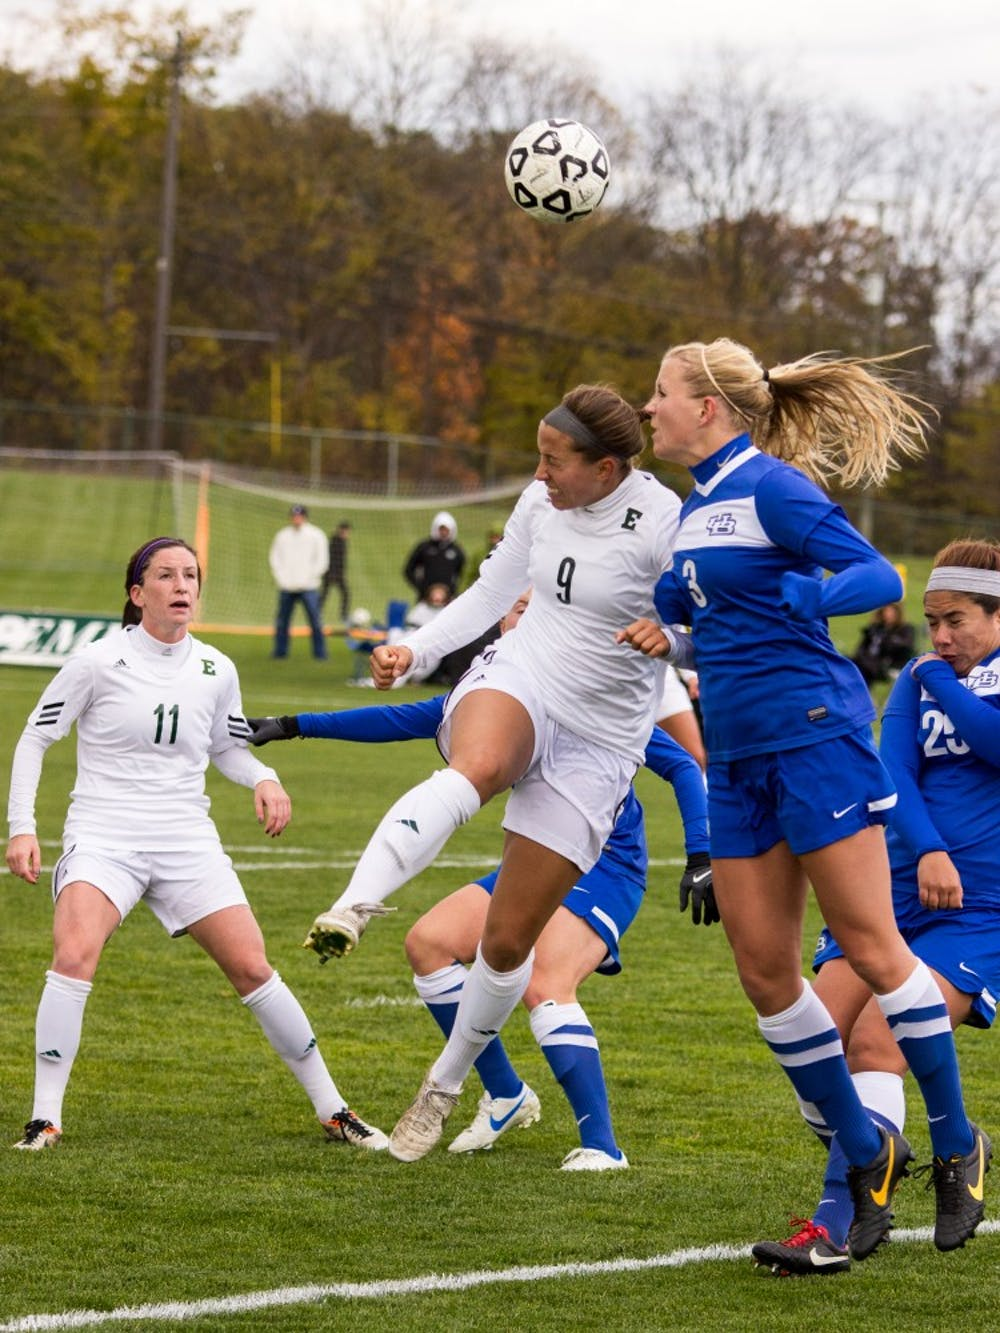 EMU soccer team ties University at Buffalo Friday, 1-1